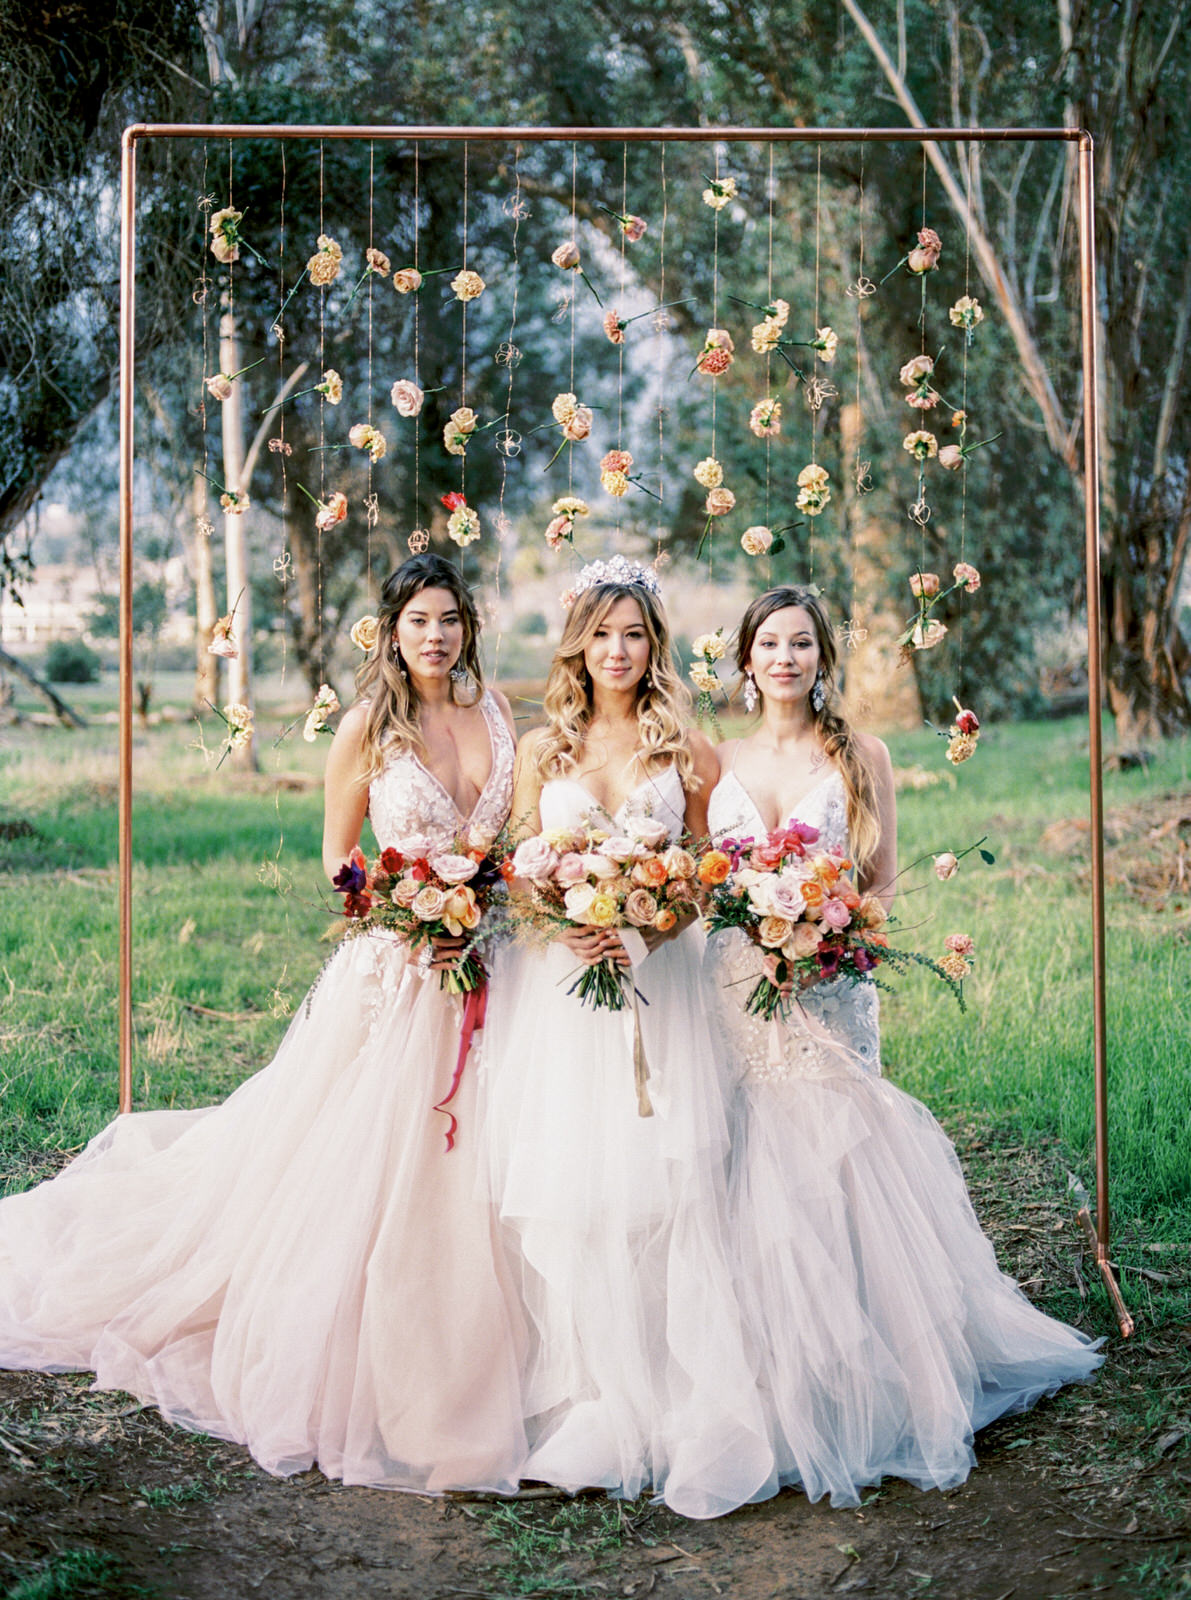 Bridal beauty wedding inspiration in the woods ruffled bridal beauty wedding inspiration in the woods photo by anna delores photography https junglespirit Gallery